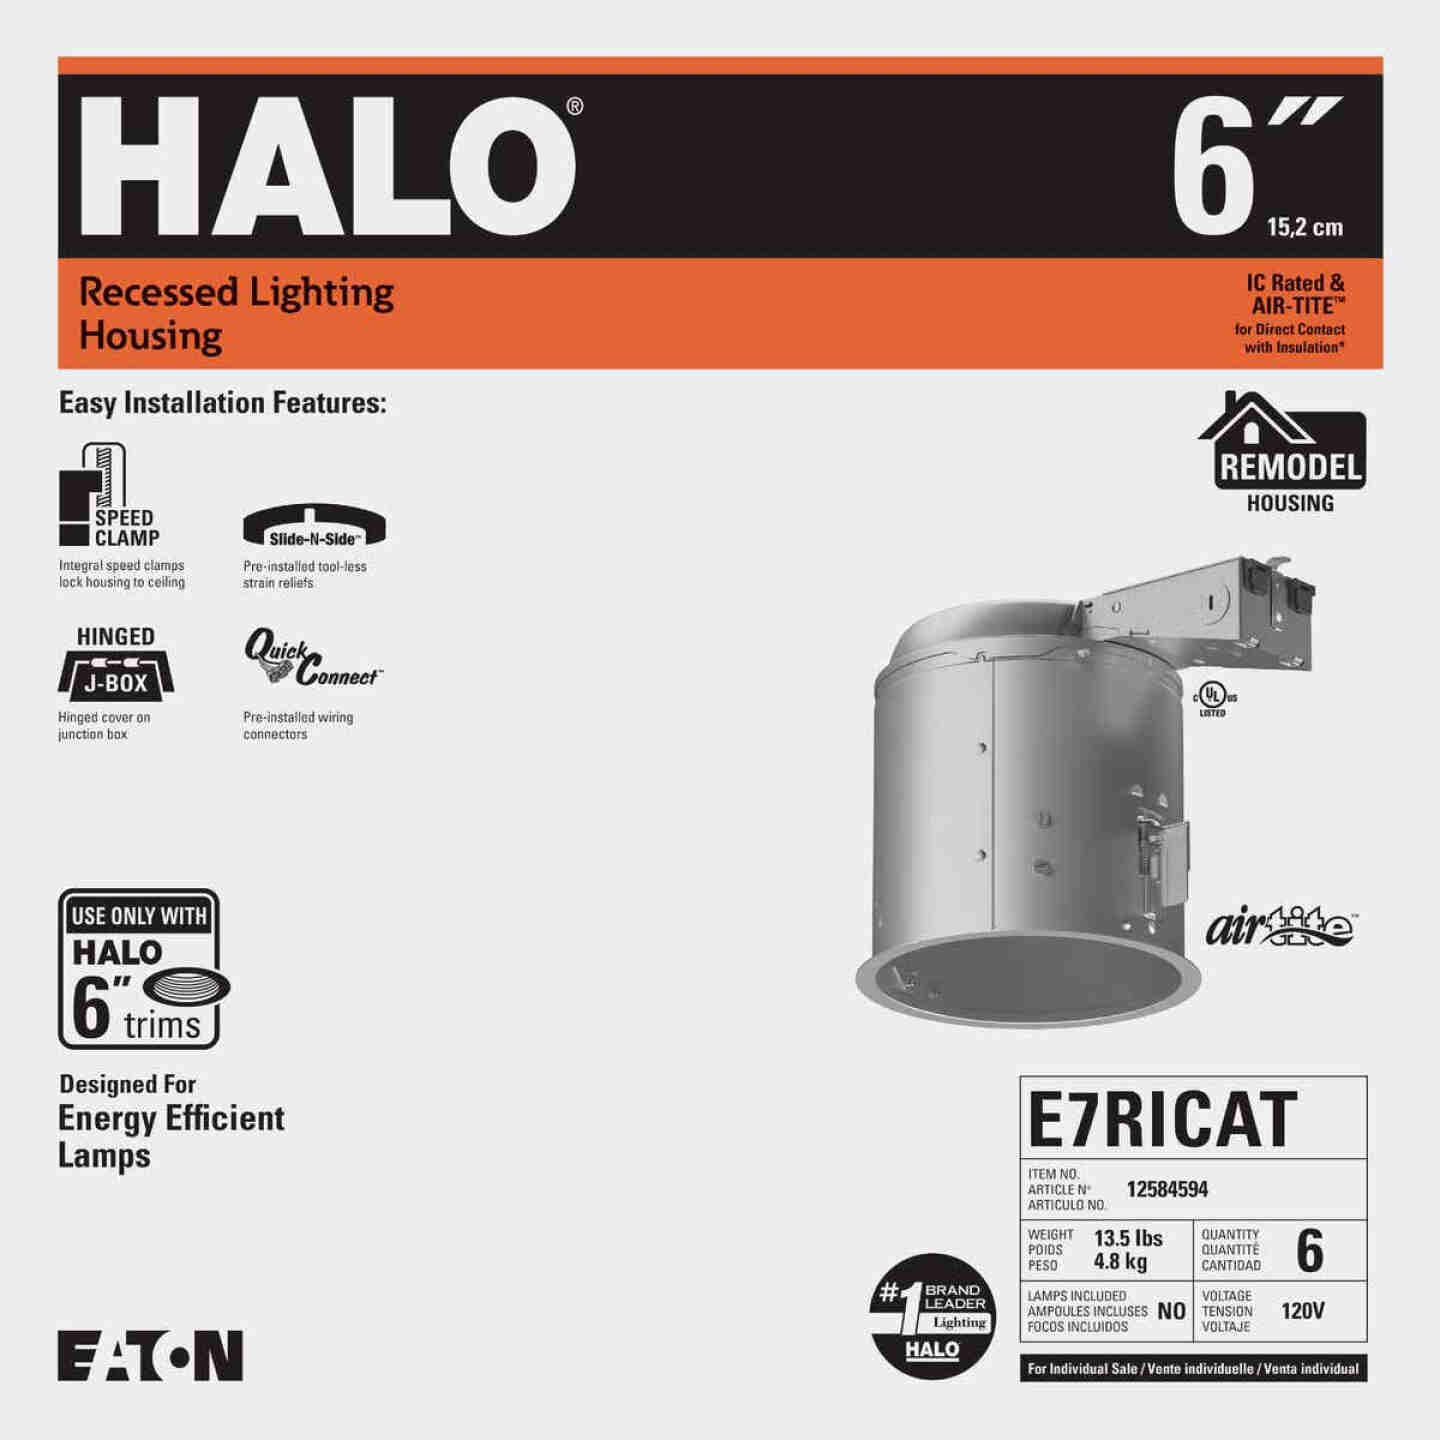 Halo Air-Tite 6 In. Remodel IC/Non-IC Rated Recessed Light Fixture Image 2